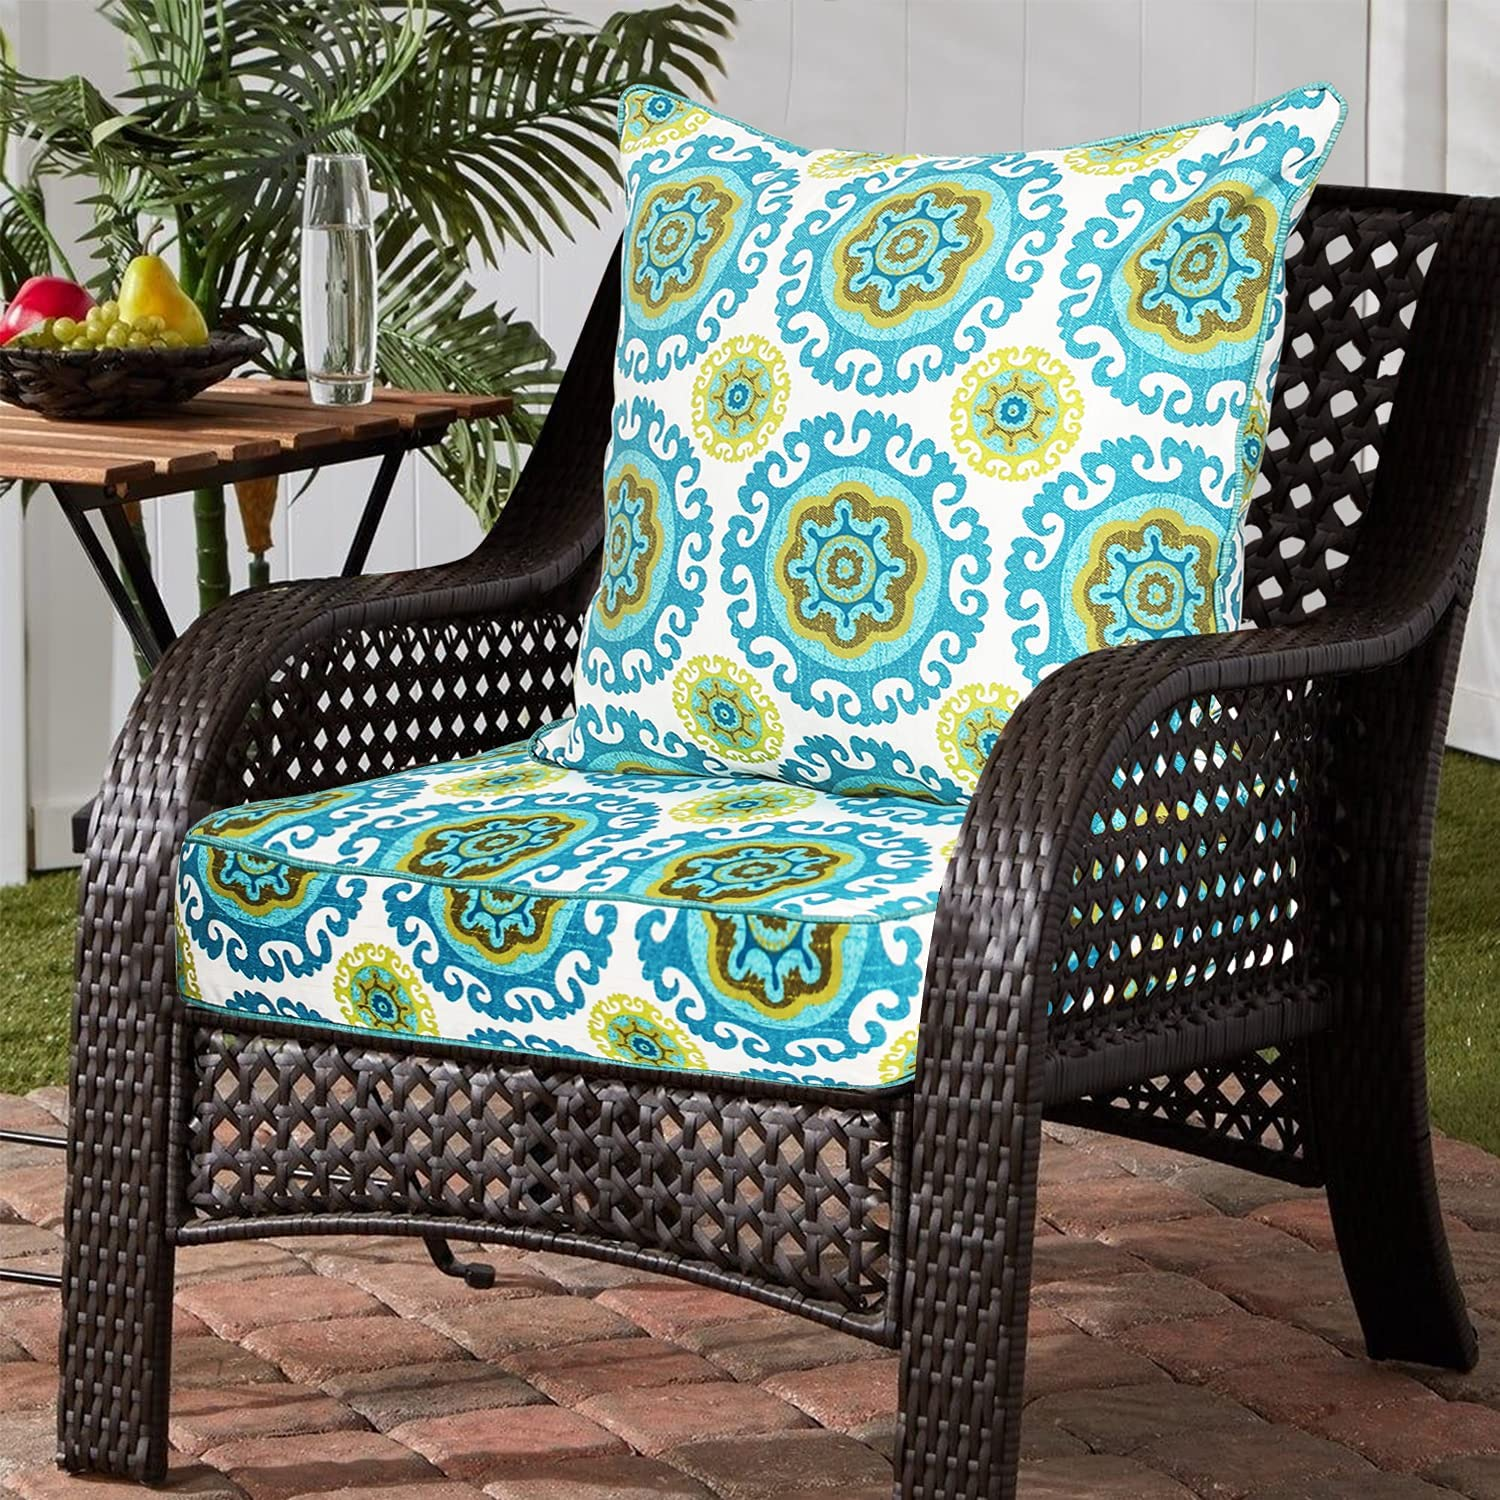 Outdoor Seat and Back Cushions 24 x 24 Inch Teal Deep Seat Cushion Set, Replacement Cushions for Outdoor Furniture, Huron Nap